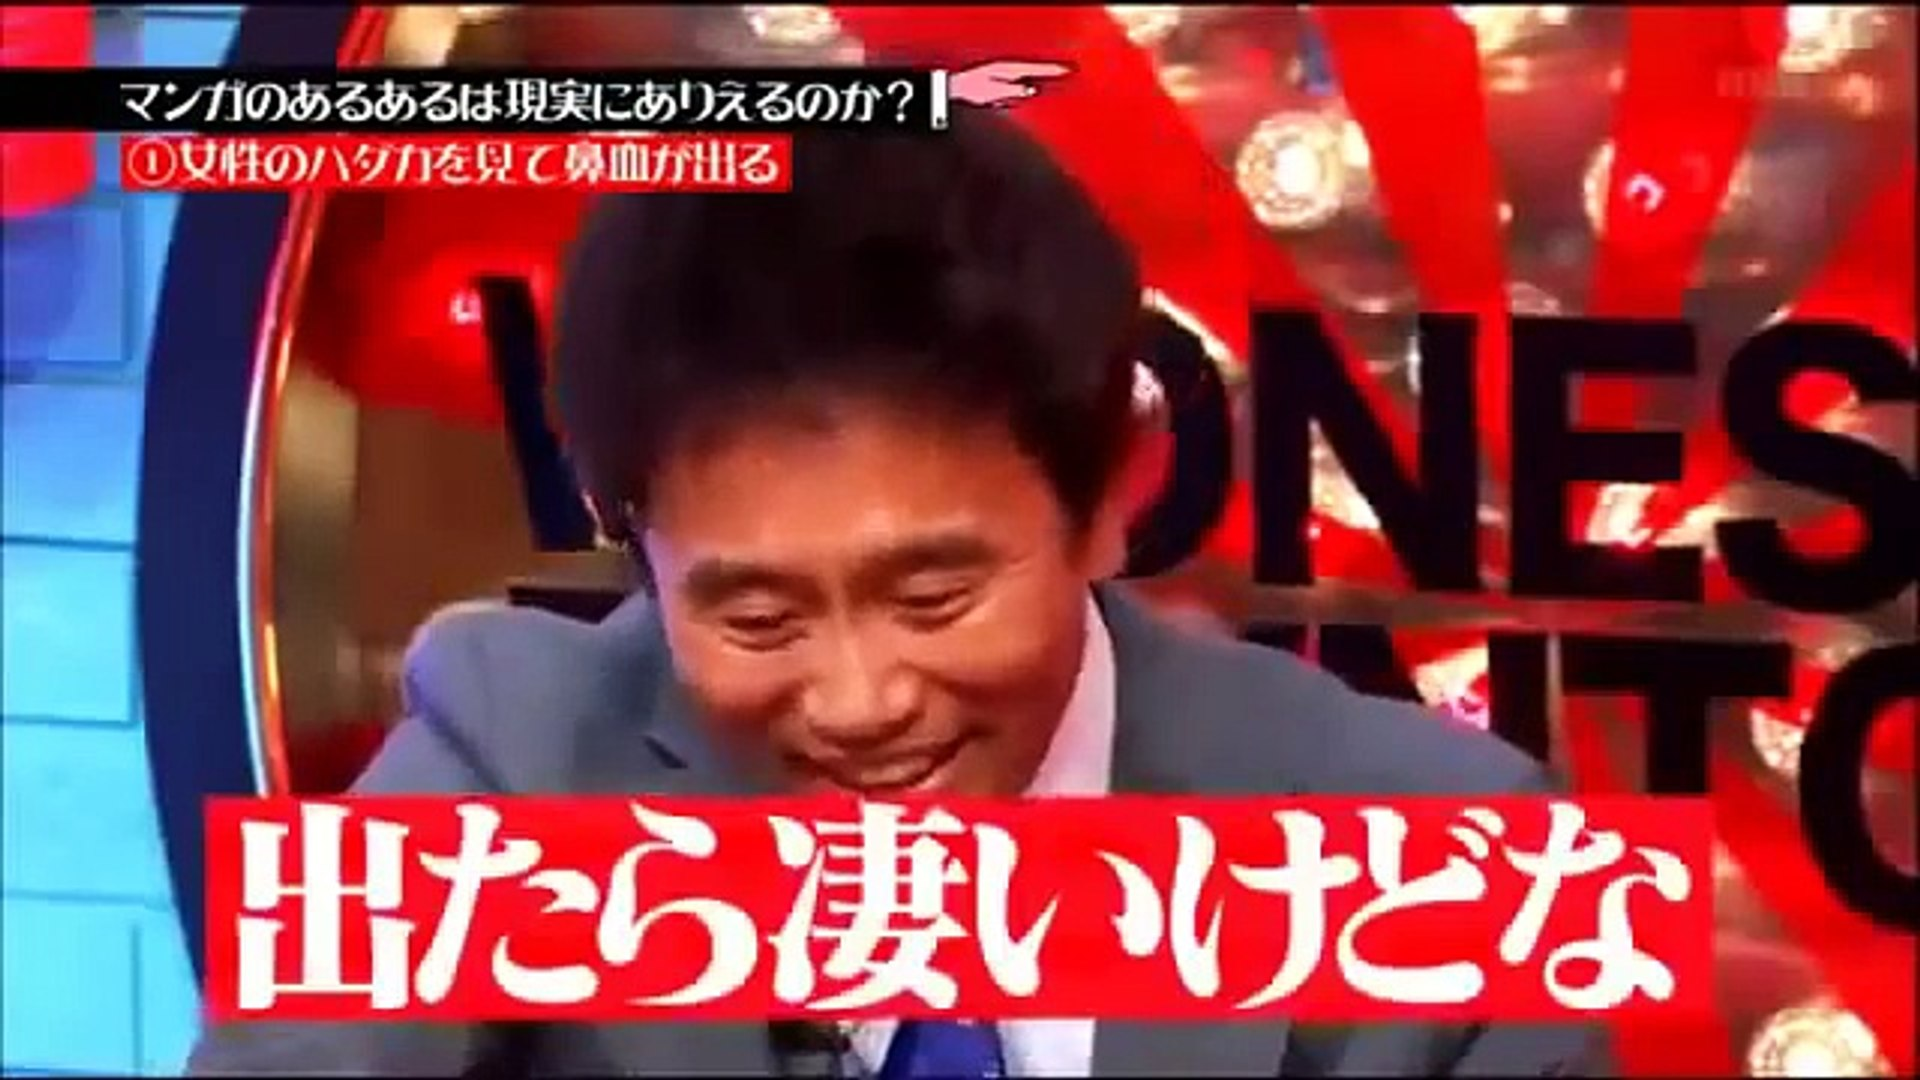 Japanese sexy gameshows Funny   Japanese Prank sexy   Manga vs Reality   Japanese 18+ gameshows